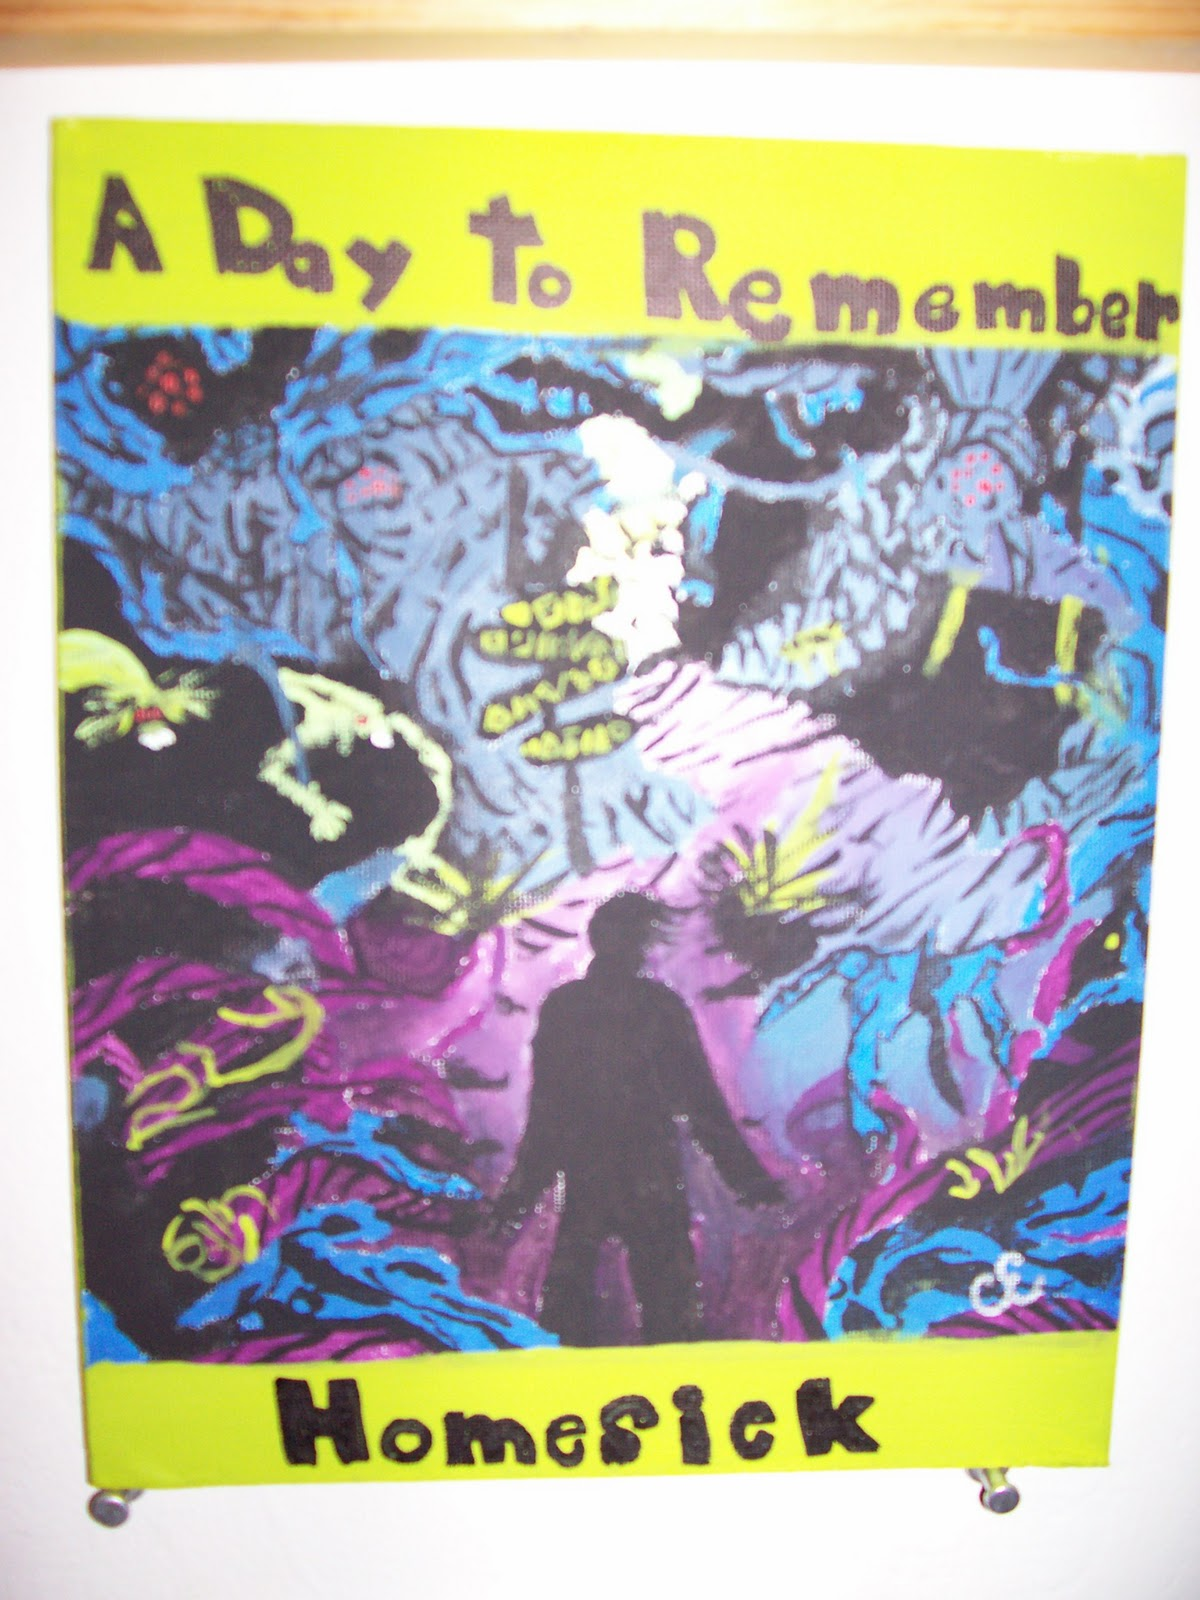 Glittergirl's Art: A Day to Remember-Homesick Album Cover A Day To Remember Homesick Album Cover